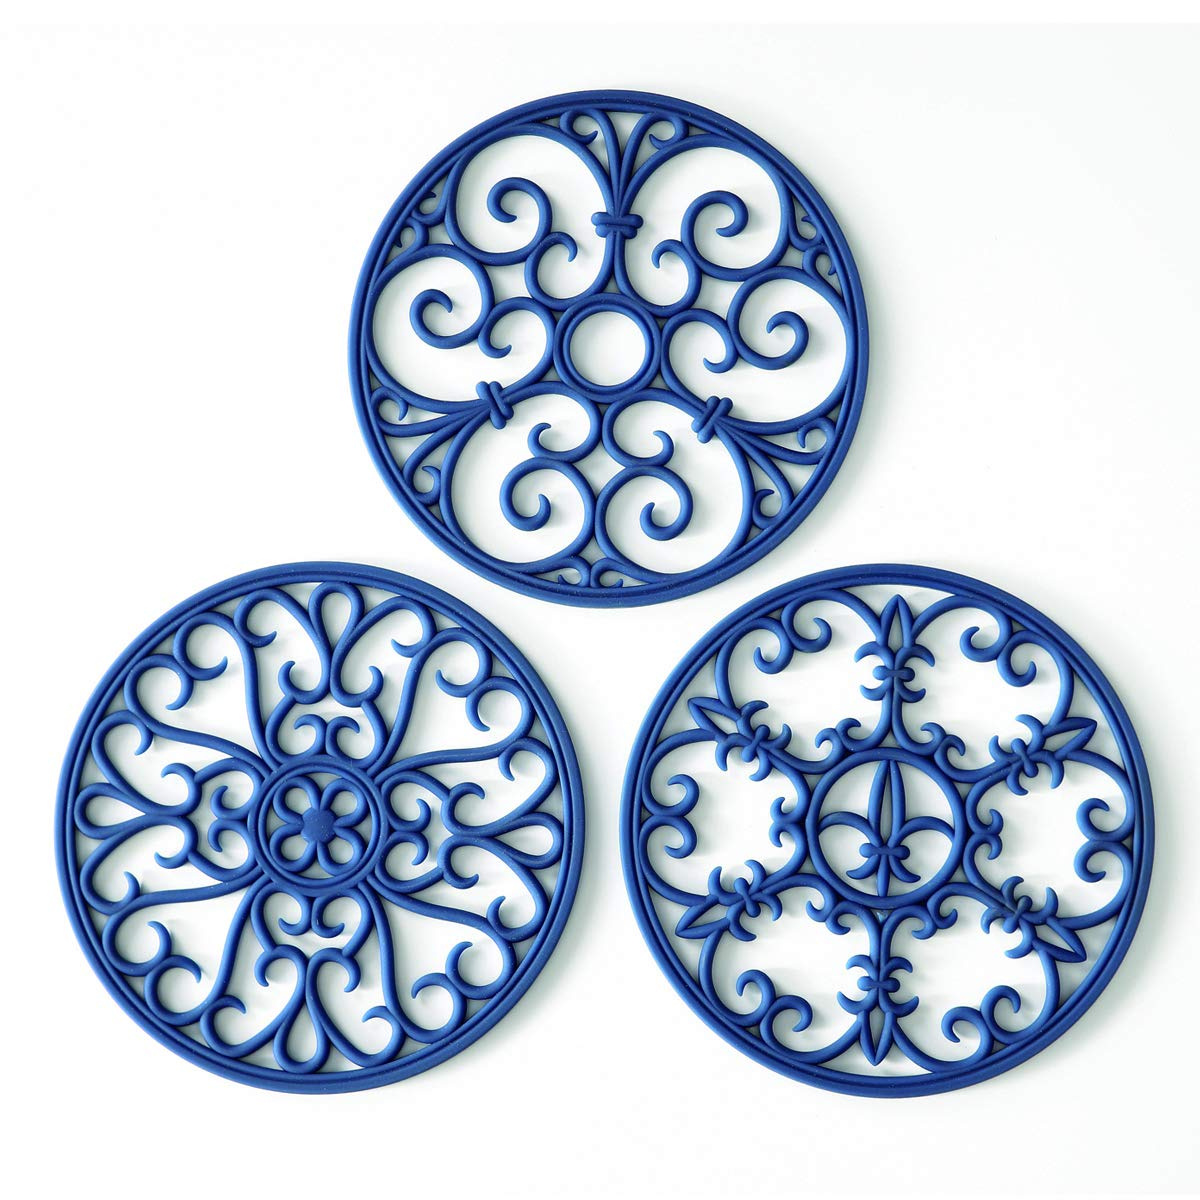 Silicone Trivet Mat - Hot Pot Holder Hot Pads for Table & Countertop - Teapot Trivet Kitchen Trivets - Non-Slip & Heat Resistant Modern Kitchen Hot Pads For Pots & Hot Dish Blue Trivet Set of 3